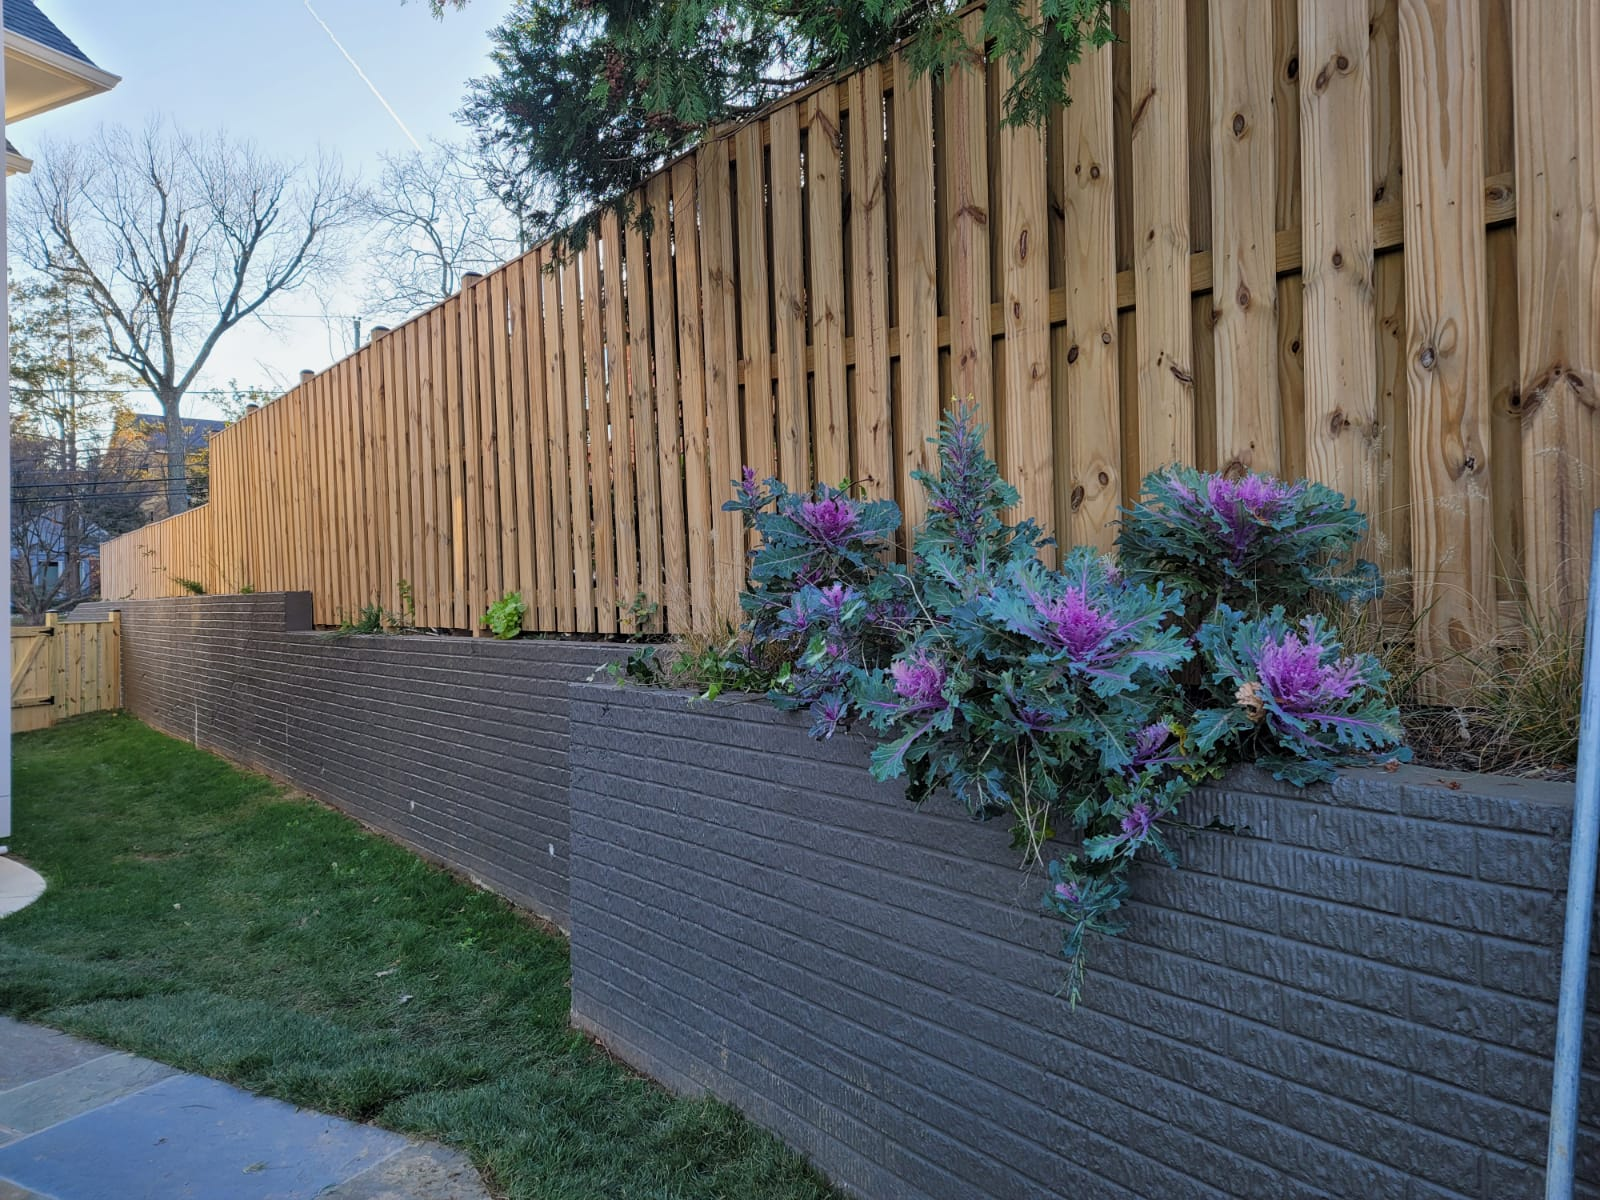 Having New Fence Installation? Must Know these Things